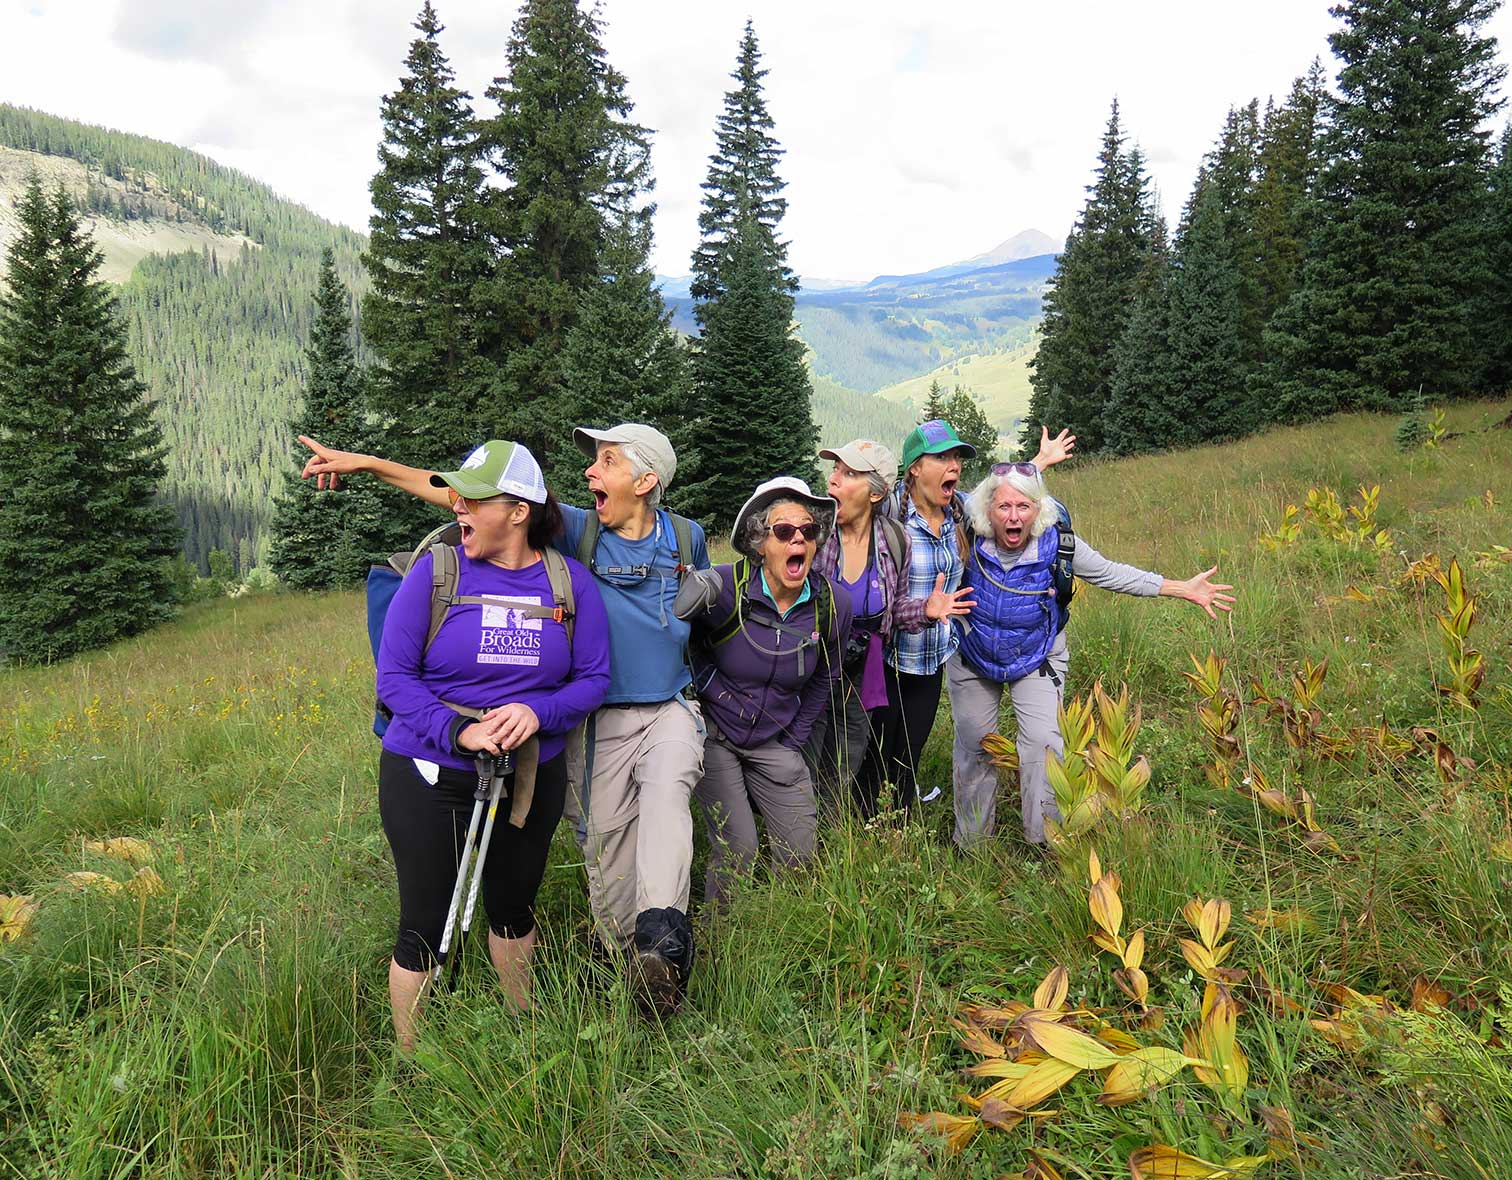 Great Old Broads for Wilderness, courtesy Osprey Packs Inc.